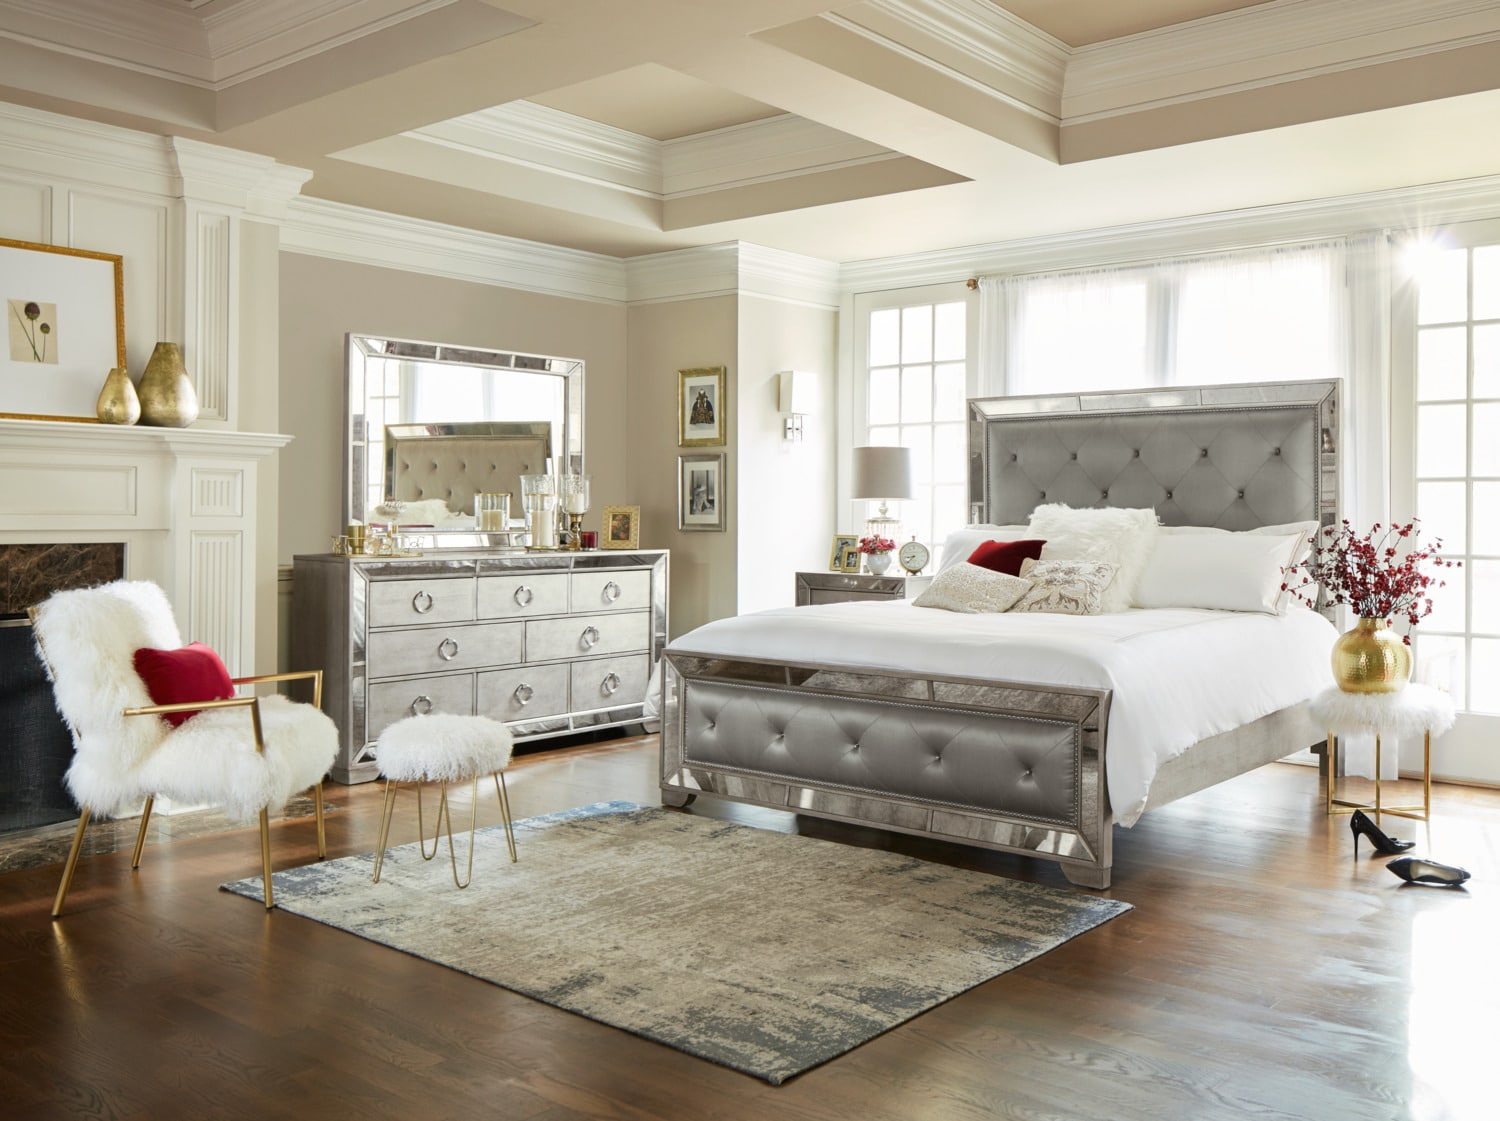 Angelina 6-Piece Queen Upholstered Bedroom Set - Metallic | Value ...